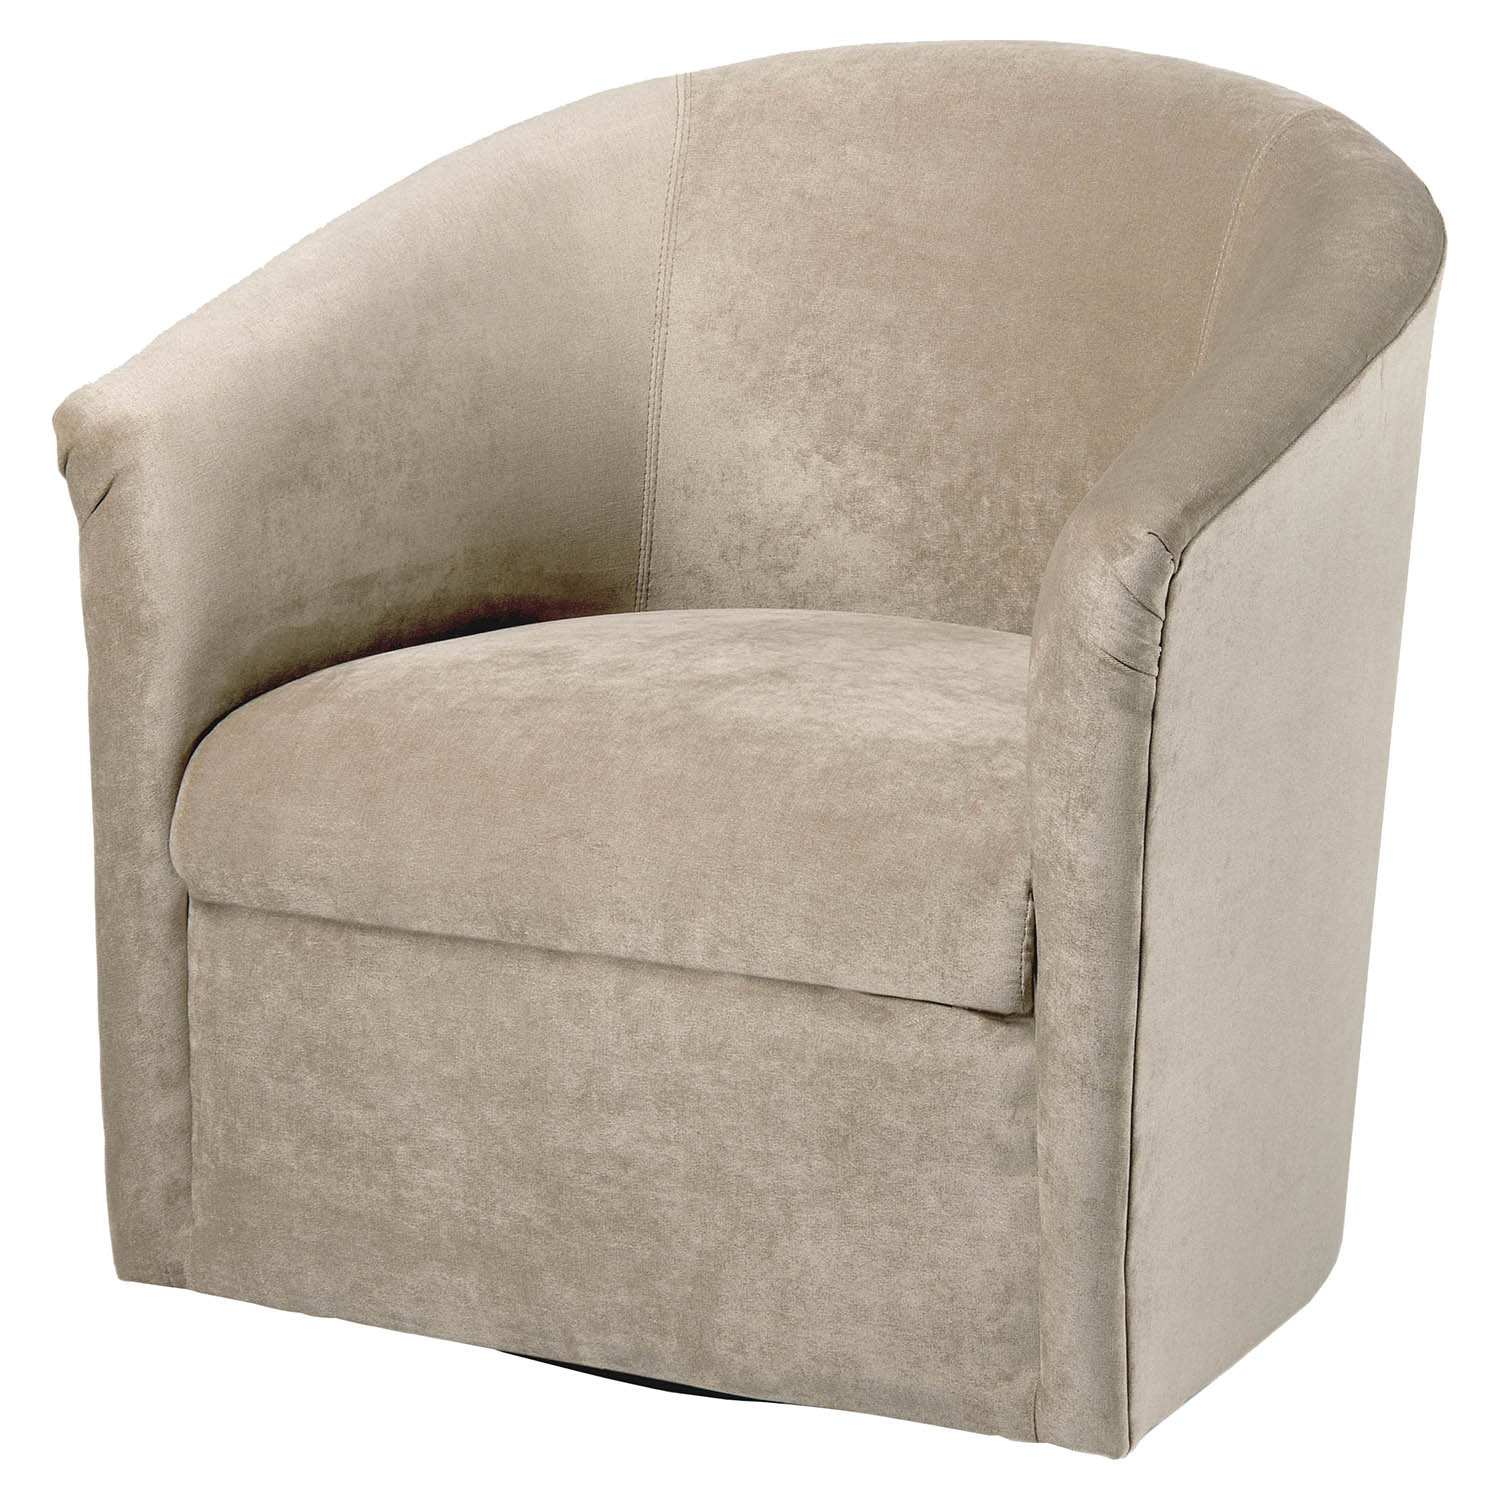 Elizabeth Swivel Chair - Sand